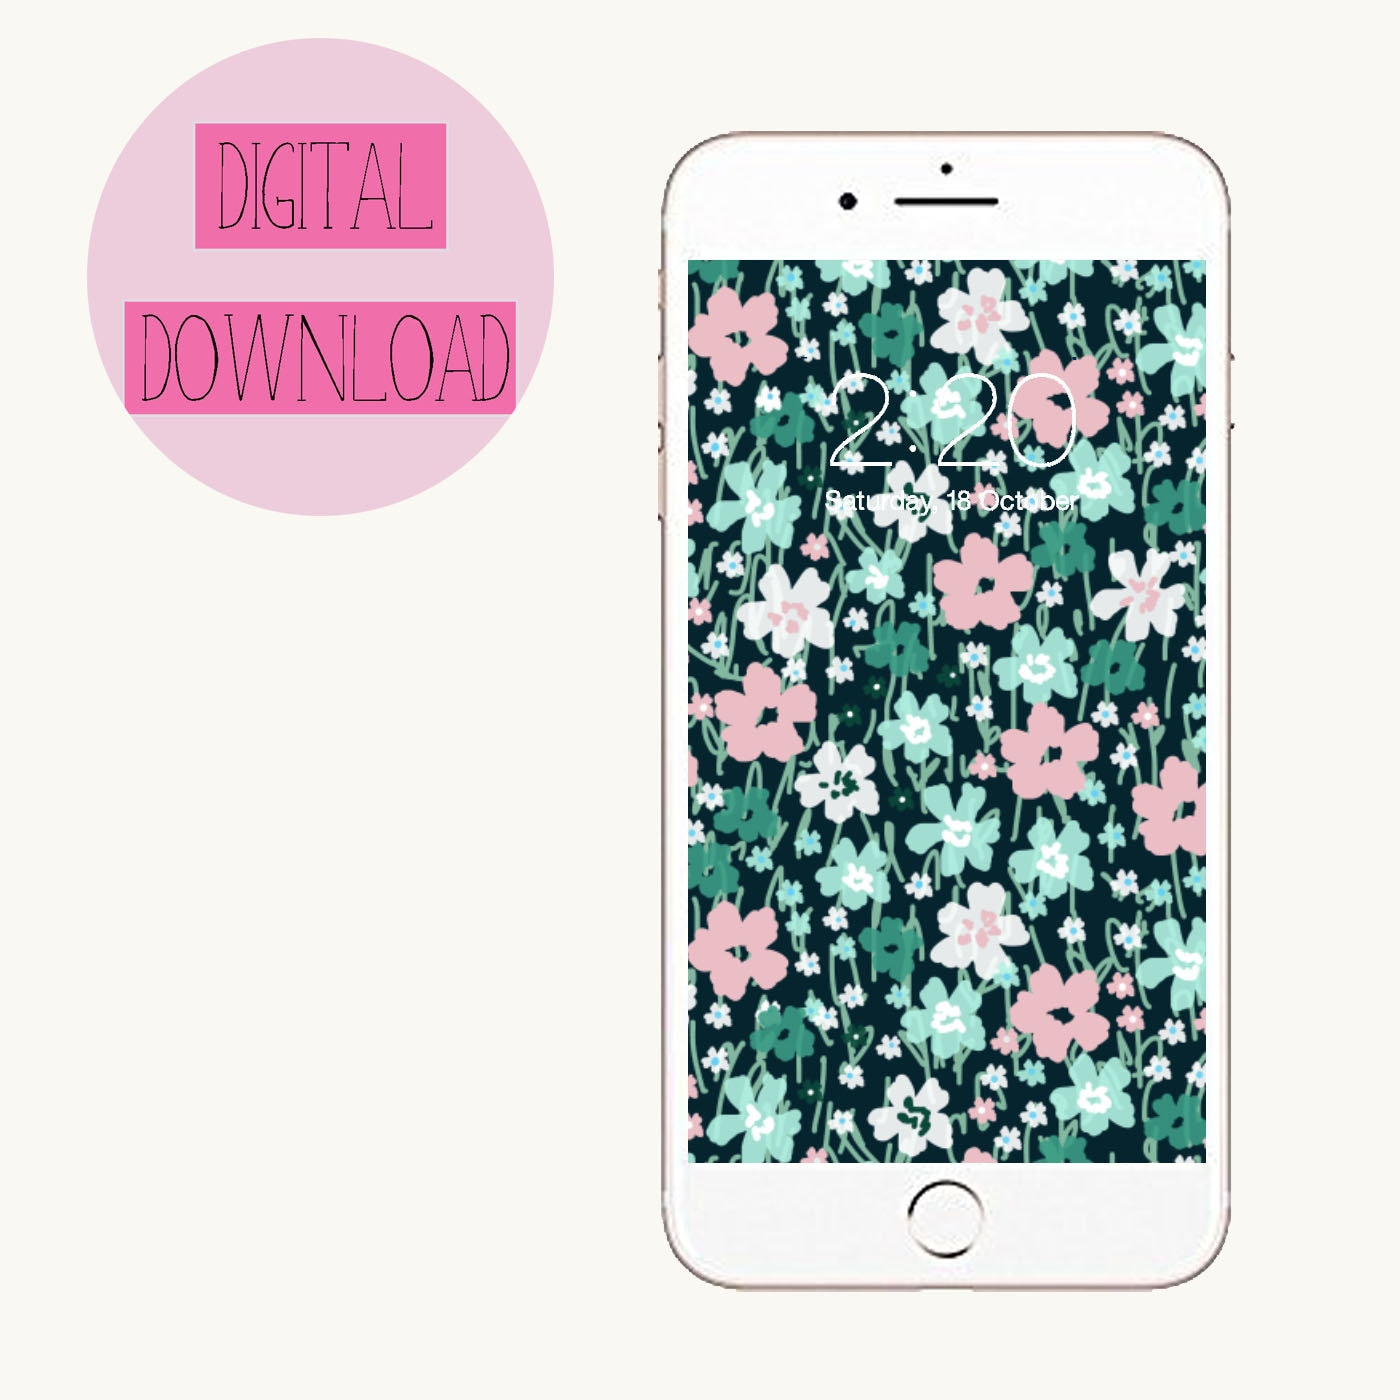 Floral Phone Wallpaper Etsy